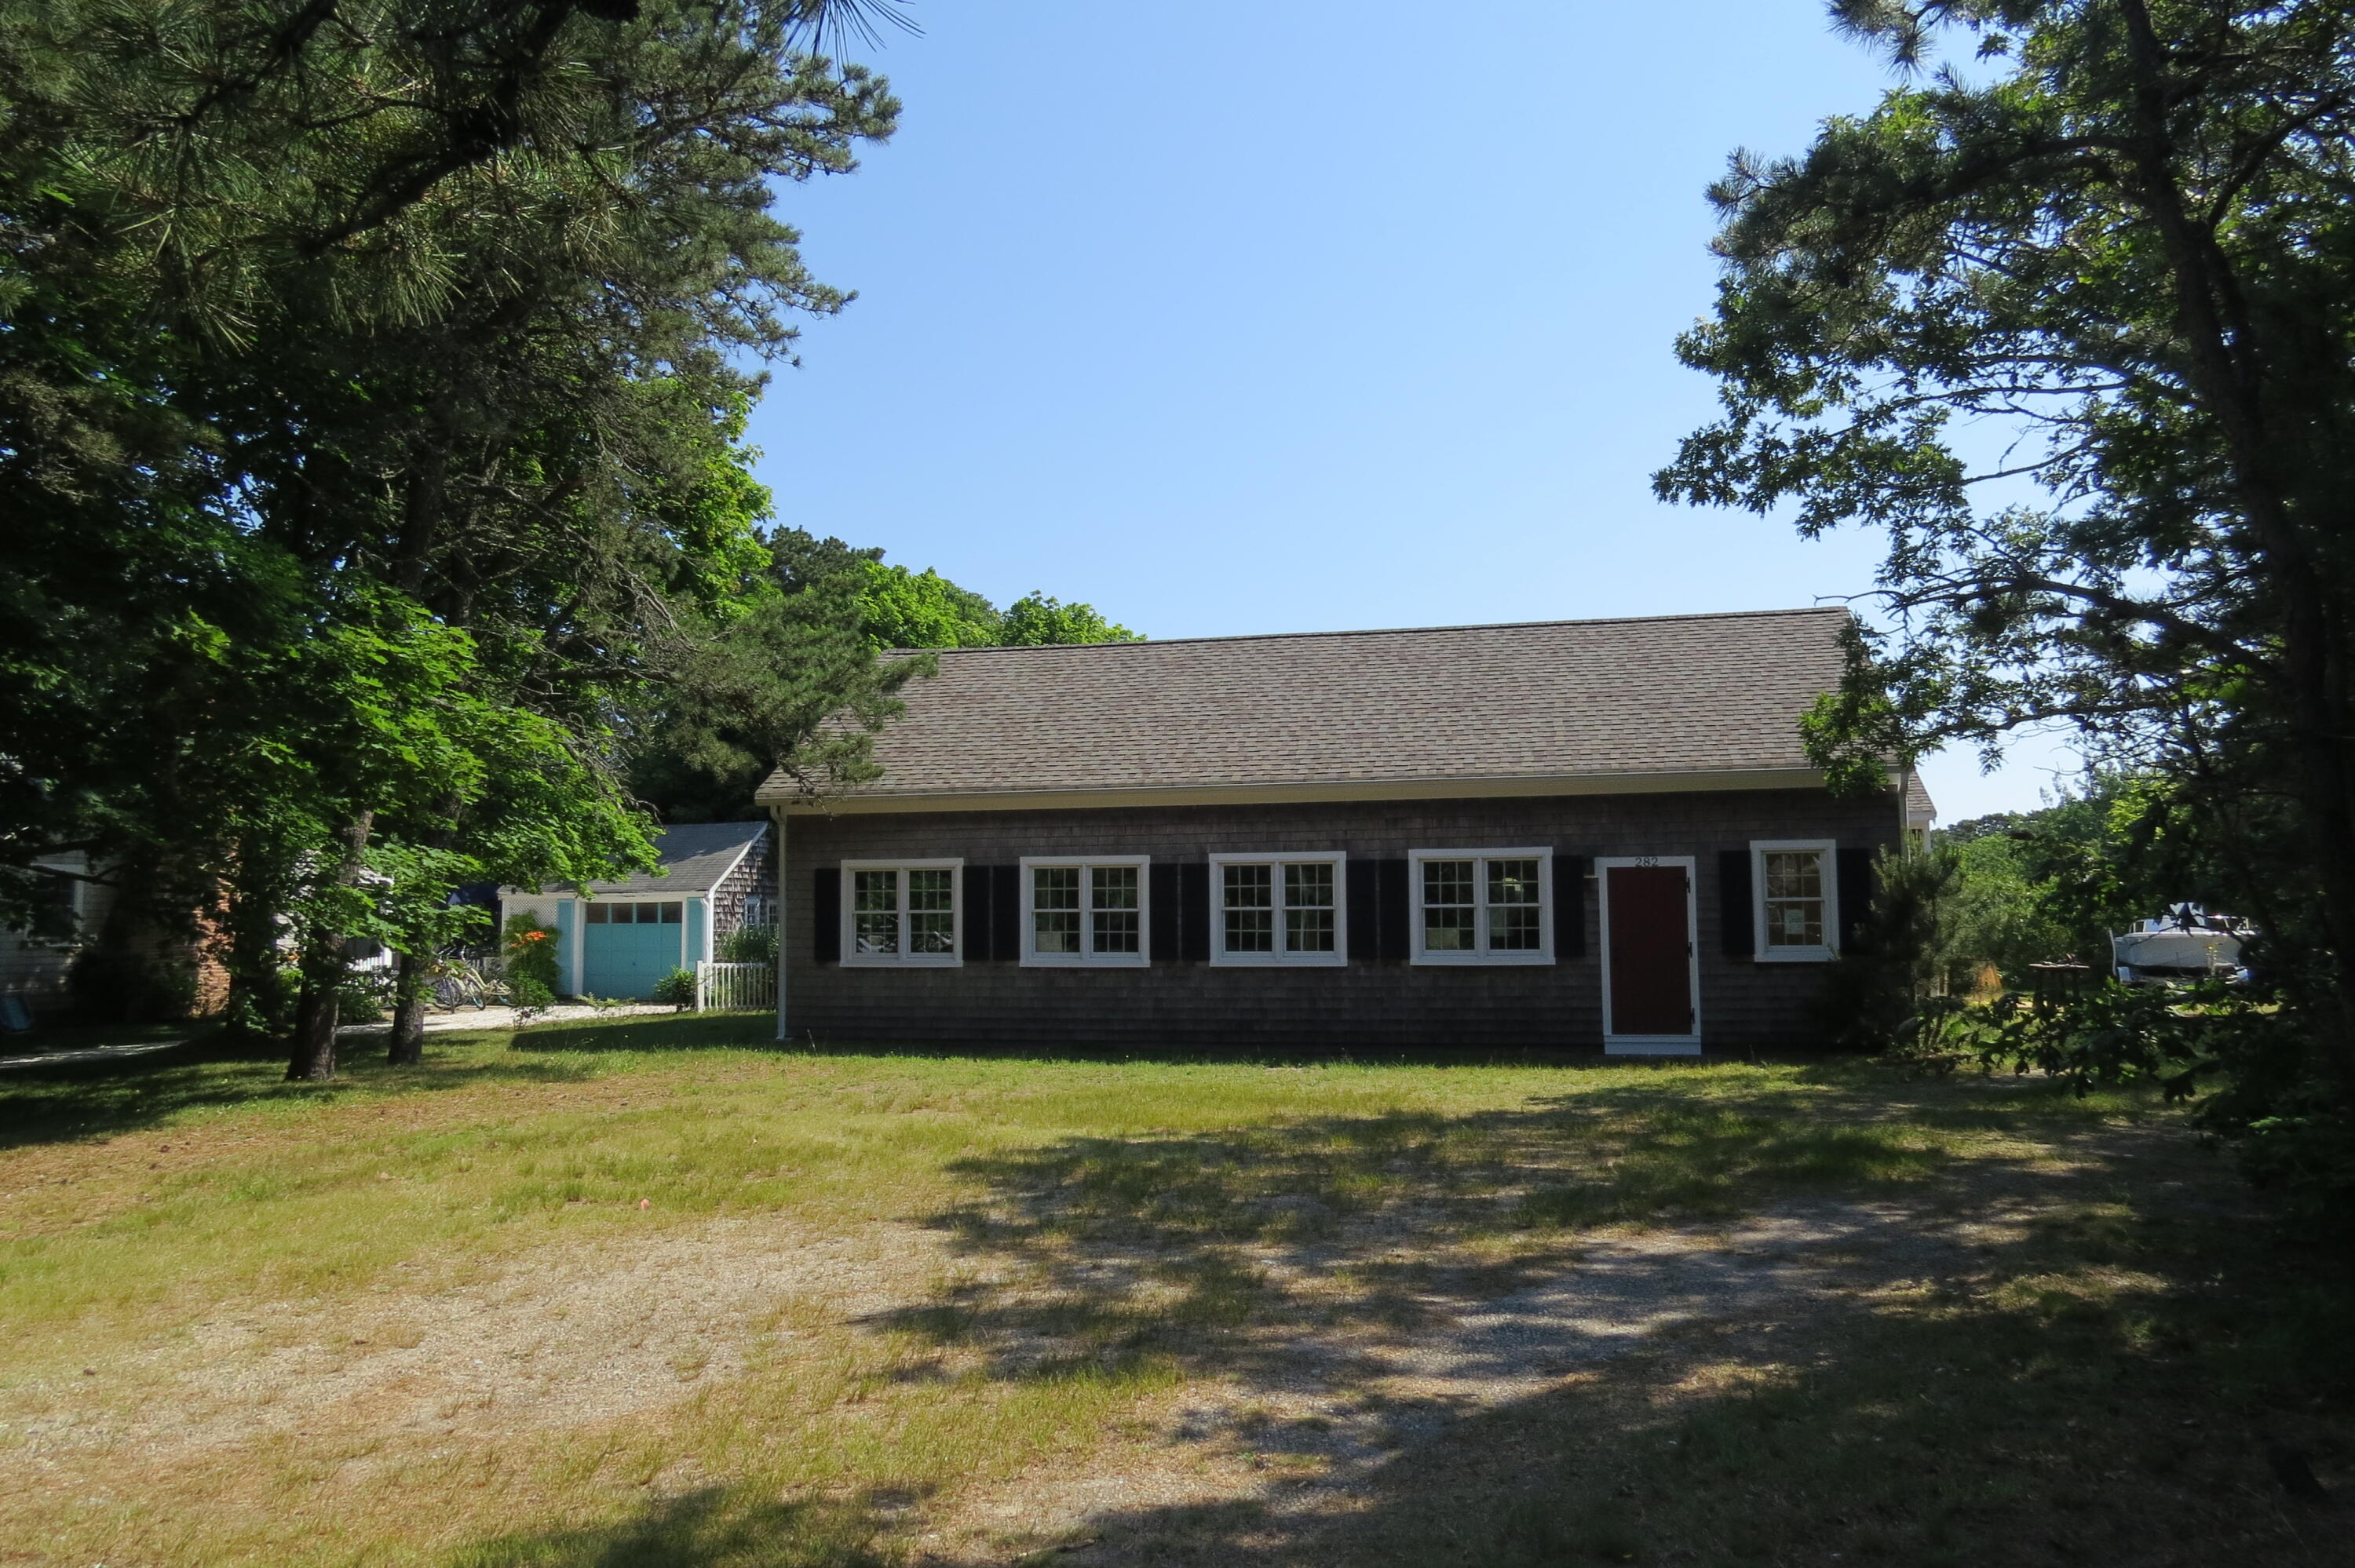 282 Orleans Road, North Chatham MA, 02650 details